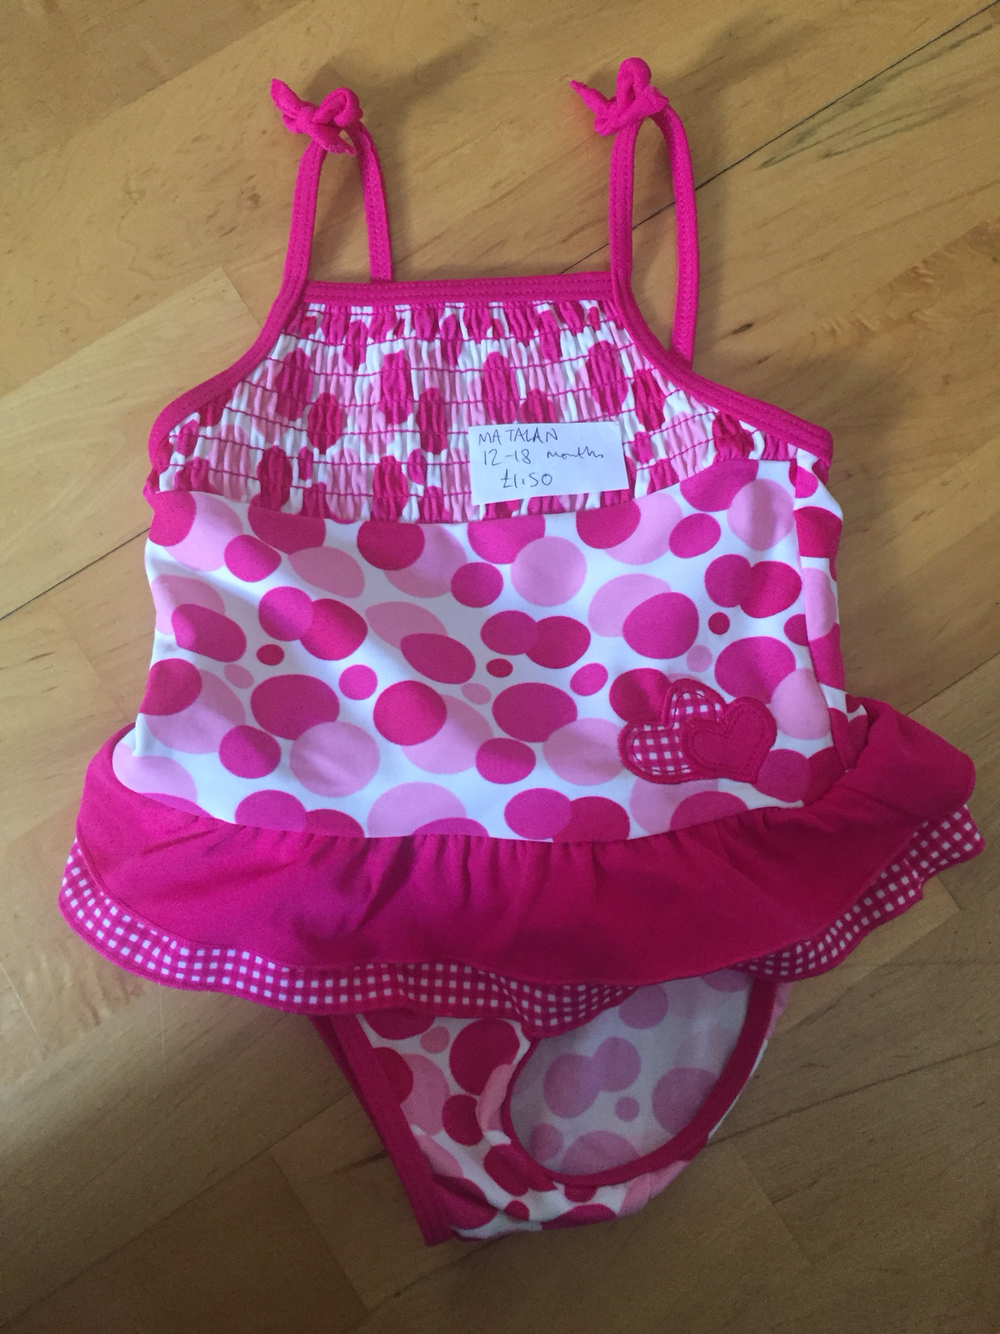 7f05e5e96b7af Baby Girls Swimming Costume 12-18 Months From Matalan Collection From Near  Orpington Hospital Advertised Elsewhere